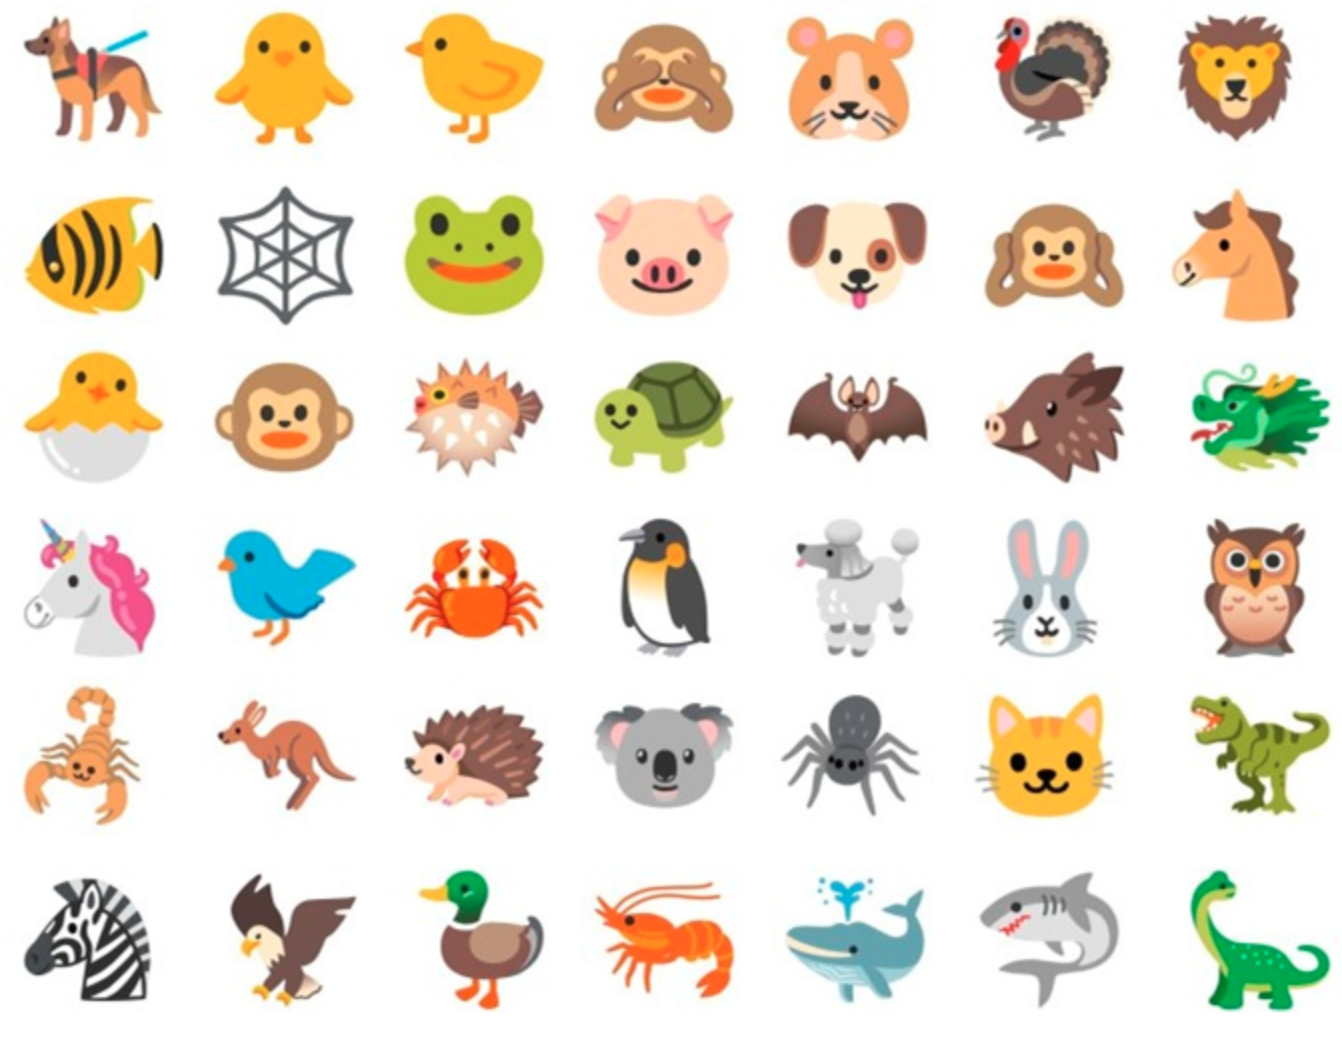 Google announces to add 117 new emojis to Android 11